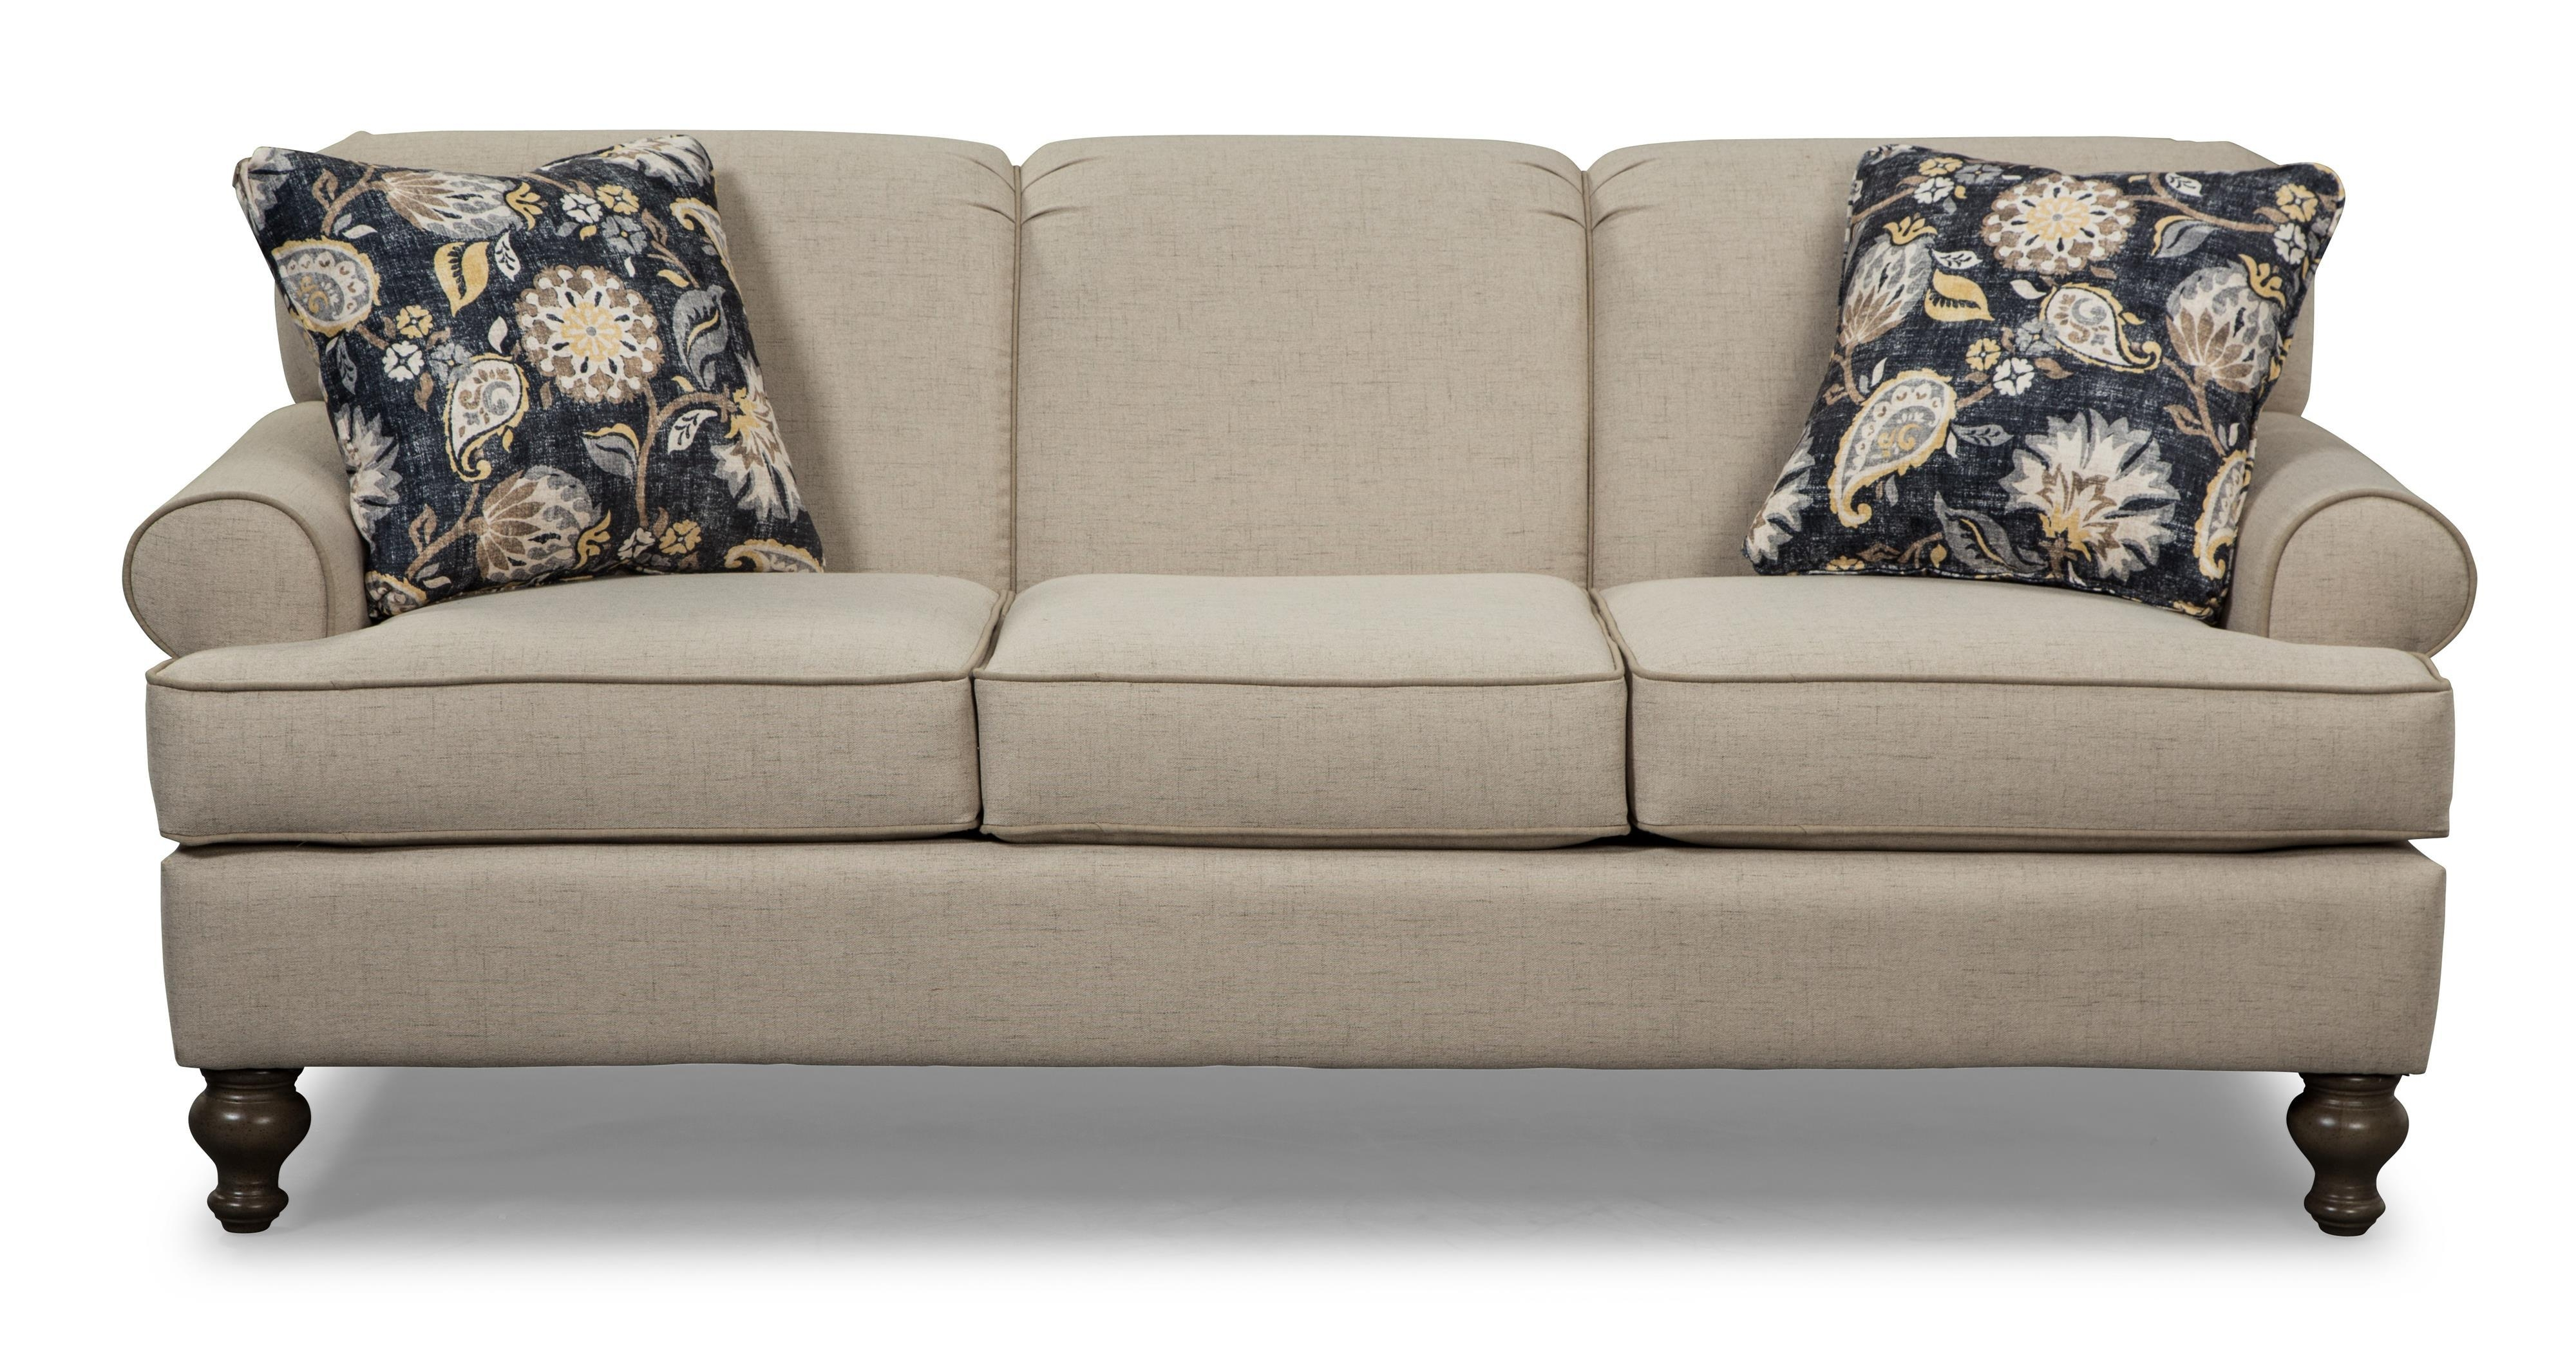 Small Scale Traditional Sofacraftmaster | Wolf And Gardiner Throughout Small Scale Sofas (View 2 of 20)